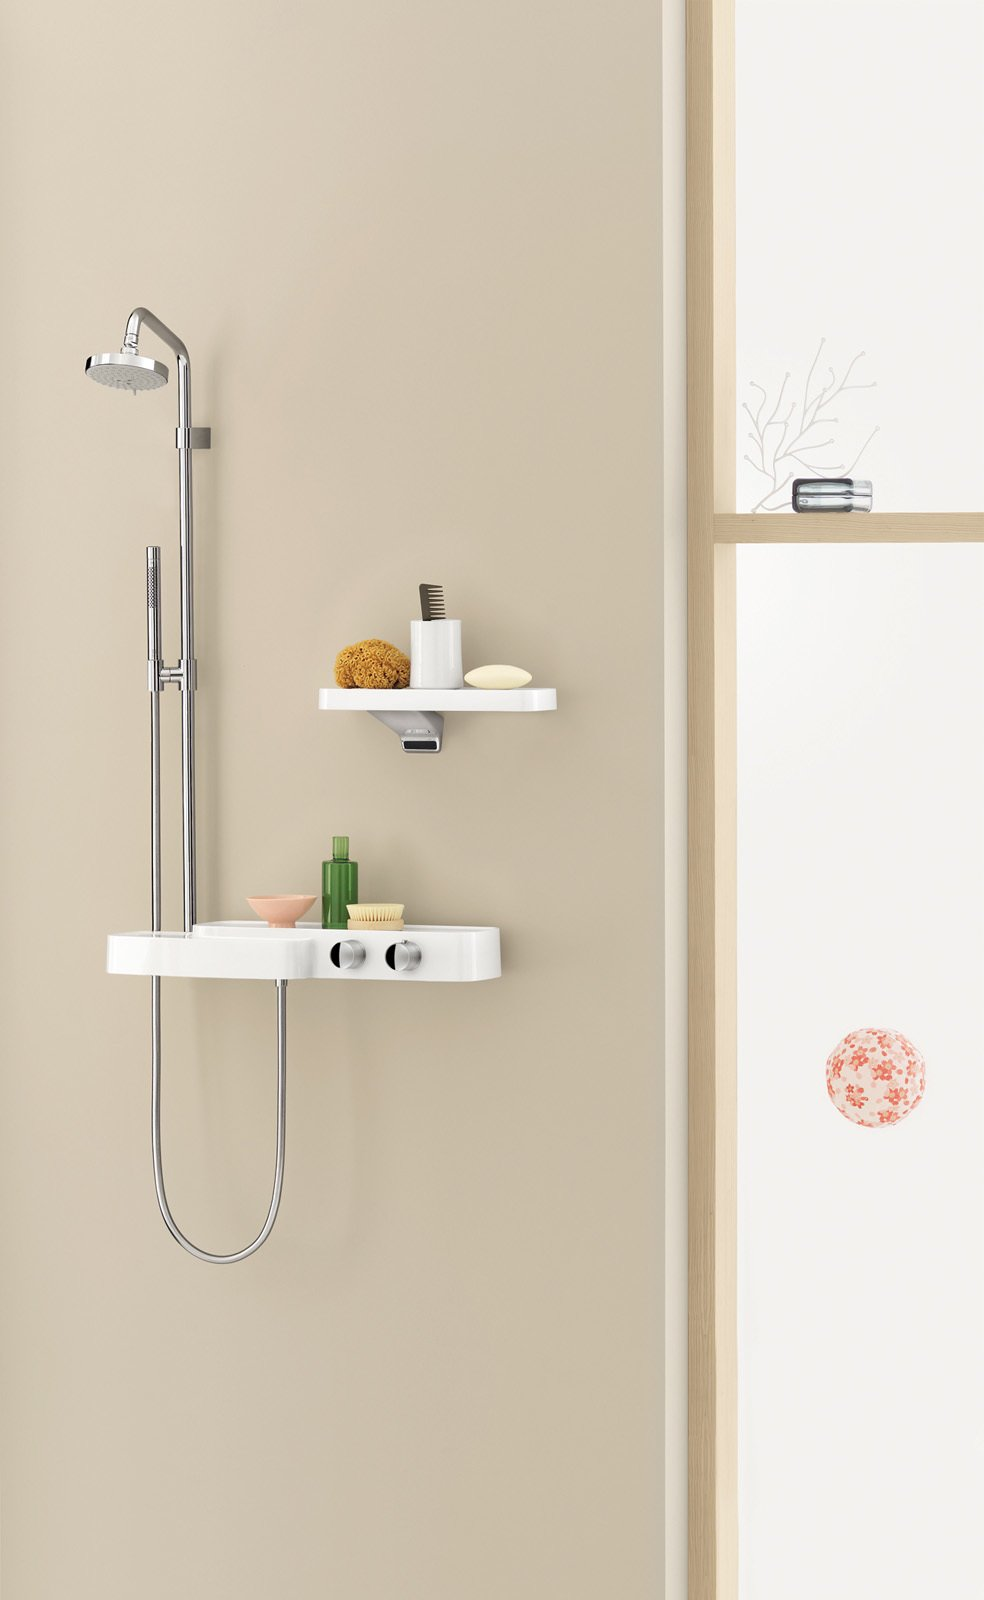 #bath #spa #bath&spa #modern #interior #fixtures #faucets #mineral-cast #shelves #sink #AxorBouroullec #productline #fixtureline  Photo courtesy of Axor Bouroullec  Photo 10 of 22 in Bath & Spa Intrigue